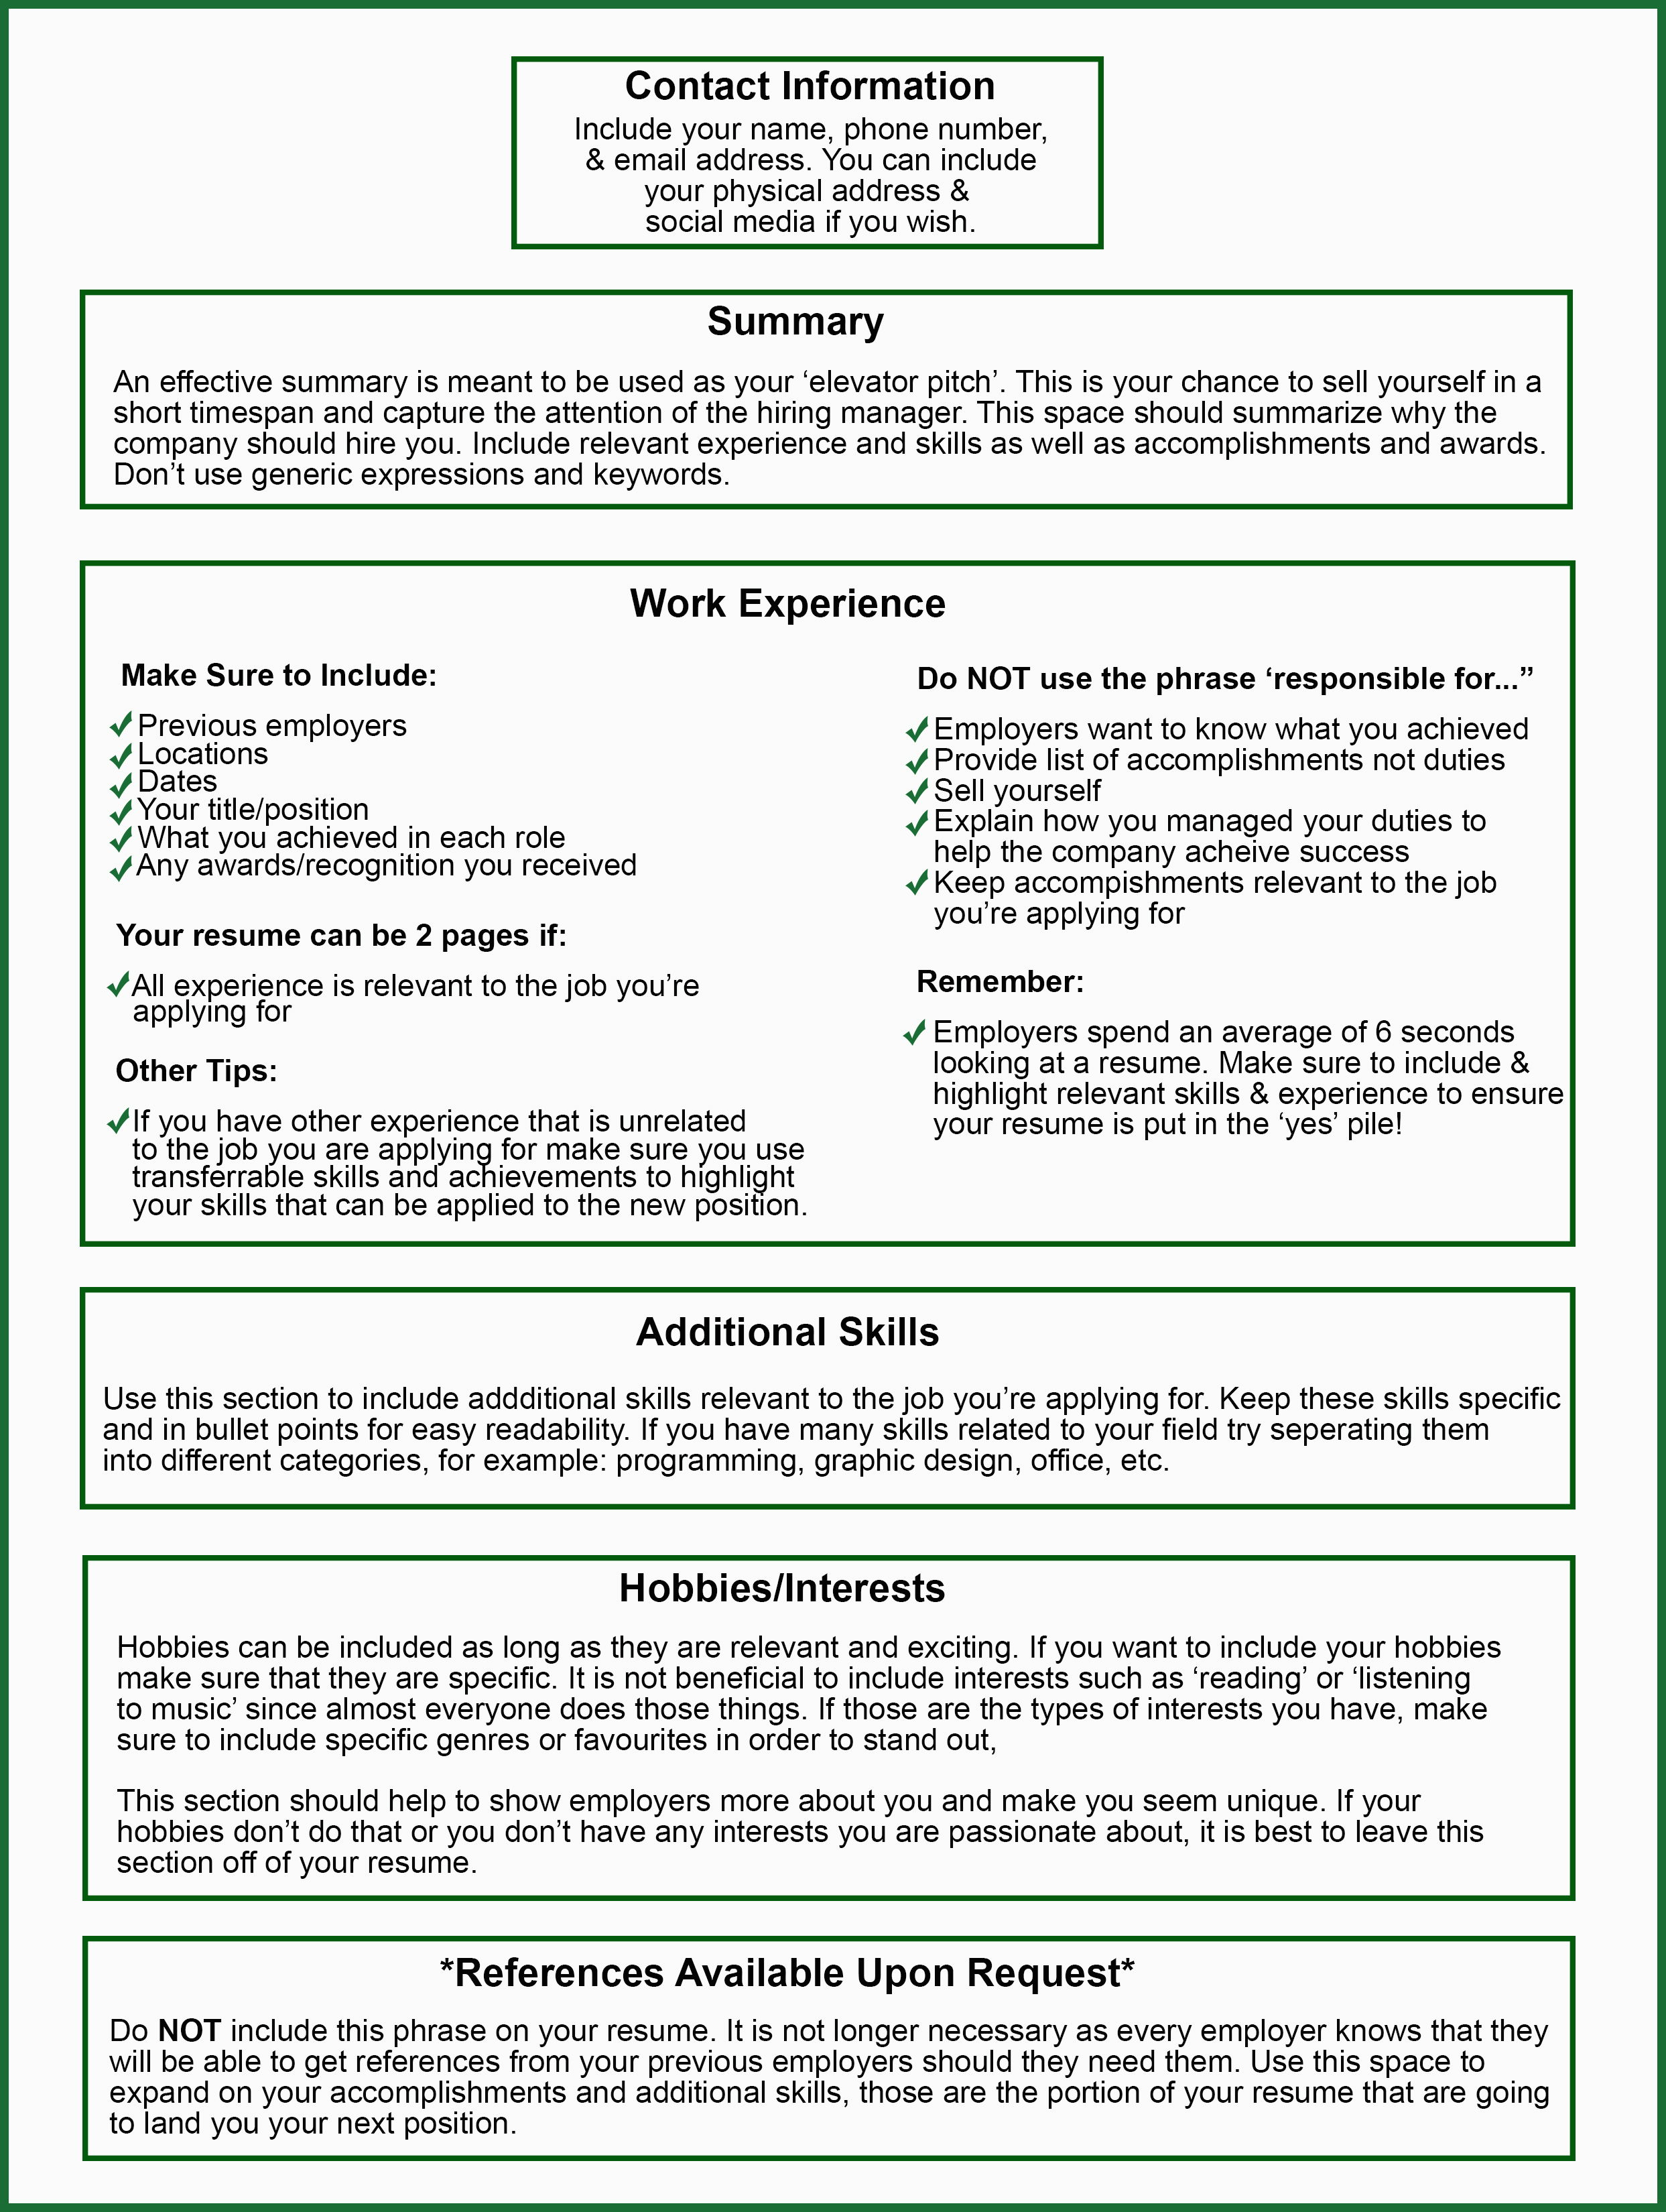 resume should you include references